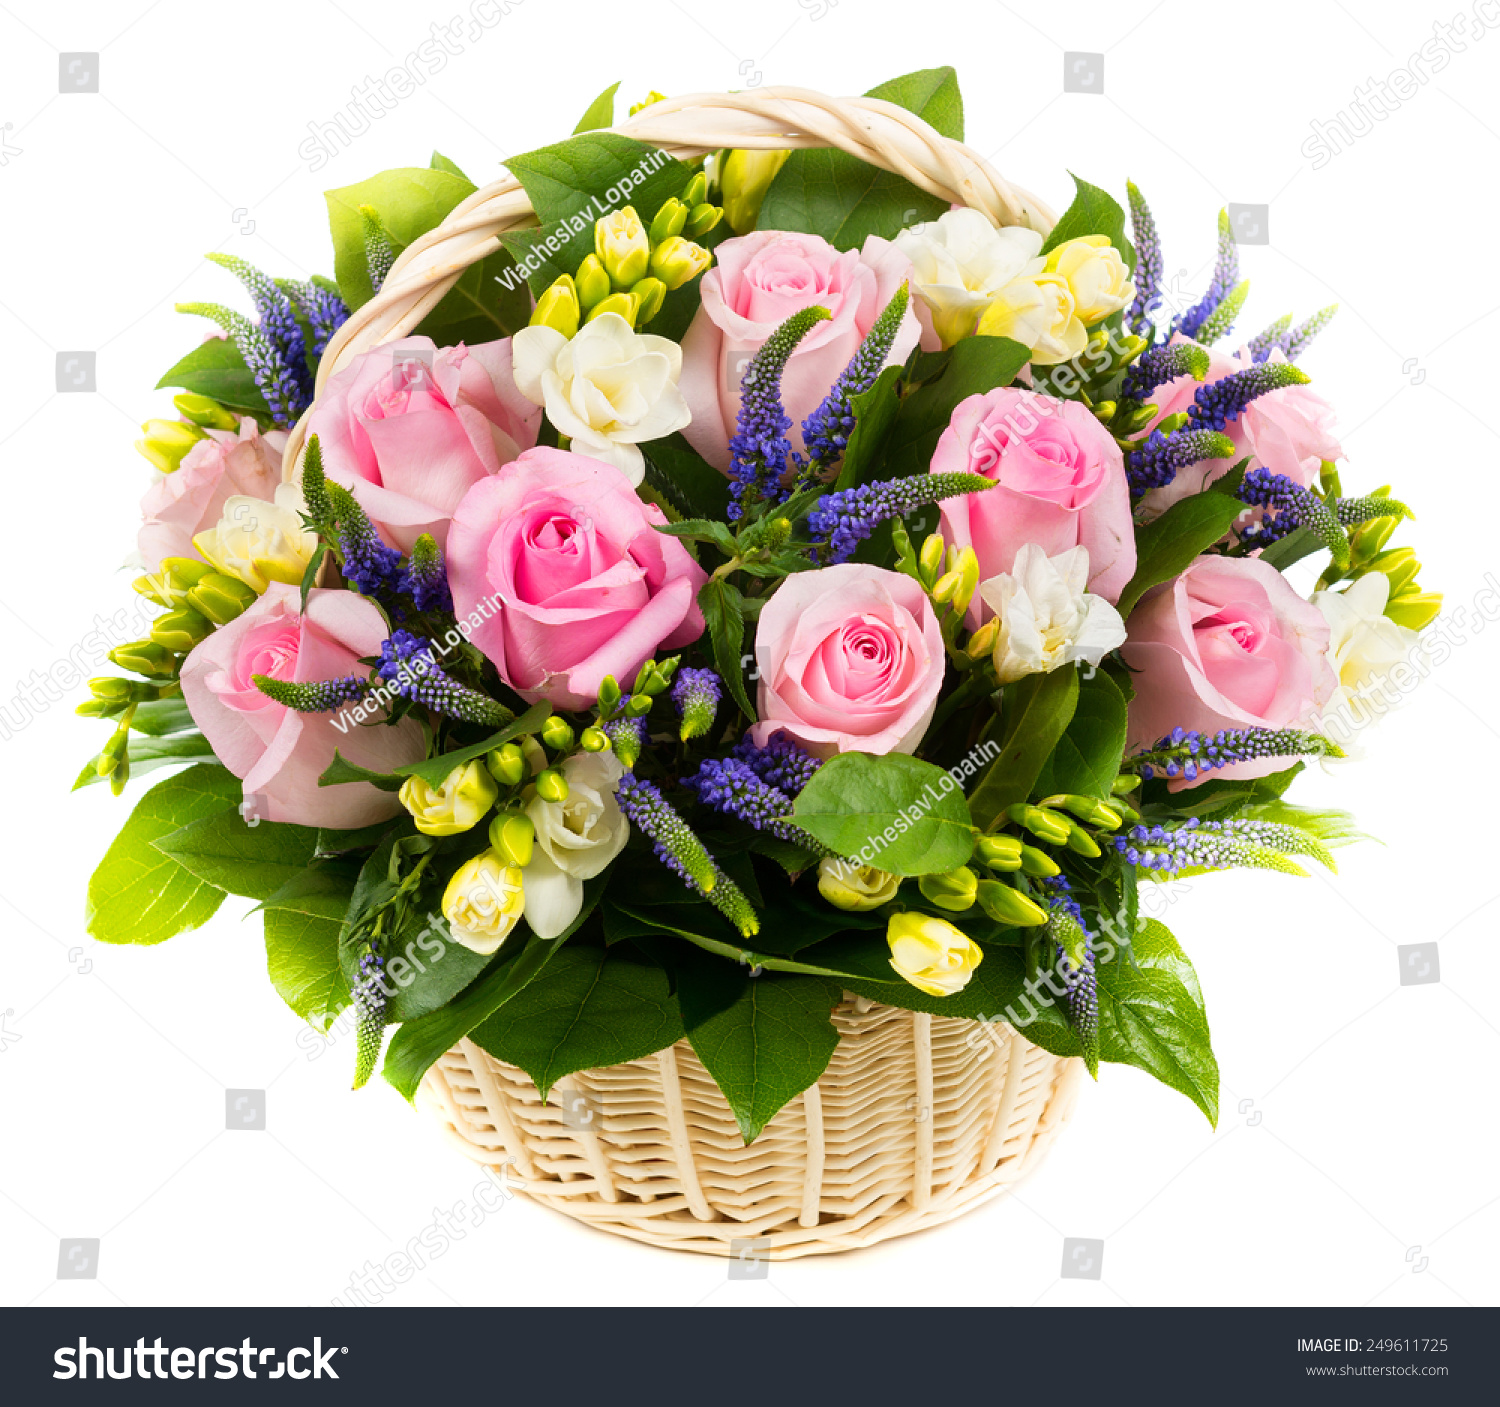 Pink roses other flowers basket isolated stock photo edit now pink roses and other flowers in a basket isolated on white background beautiful natural flowers izmirmasajfo